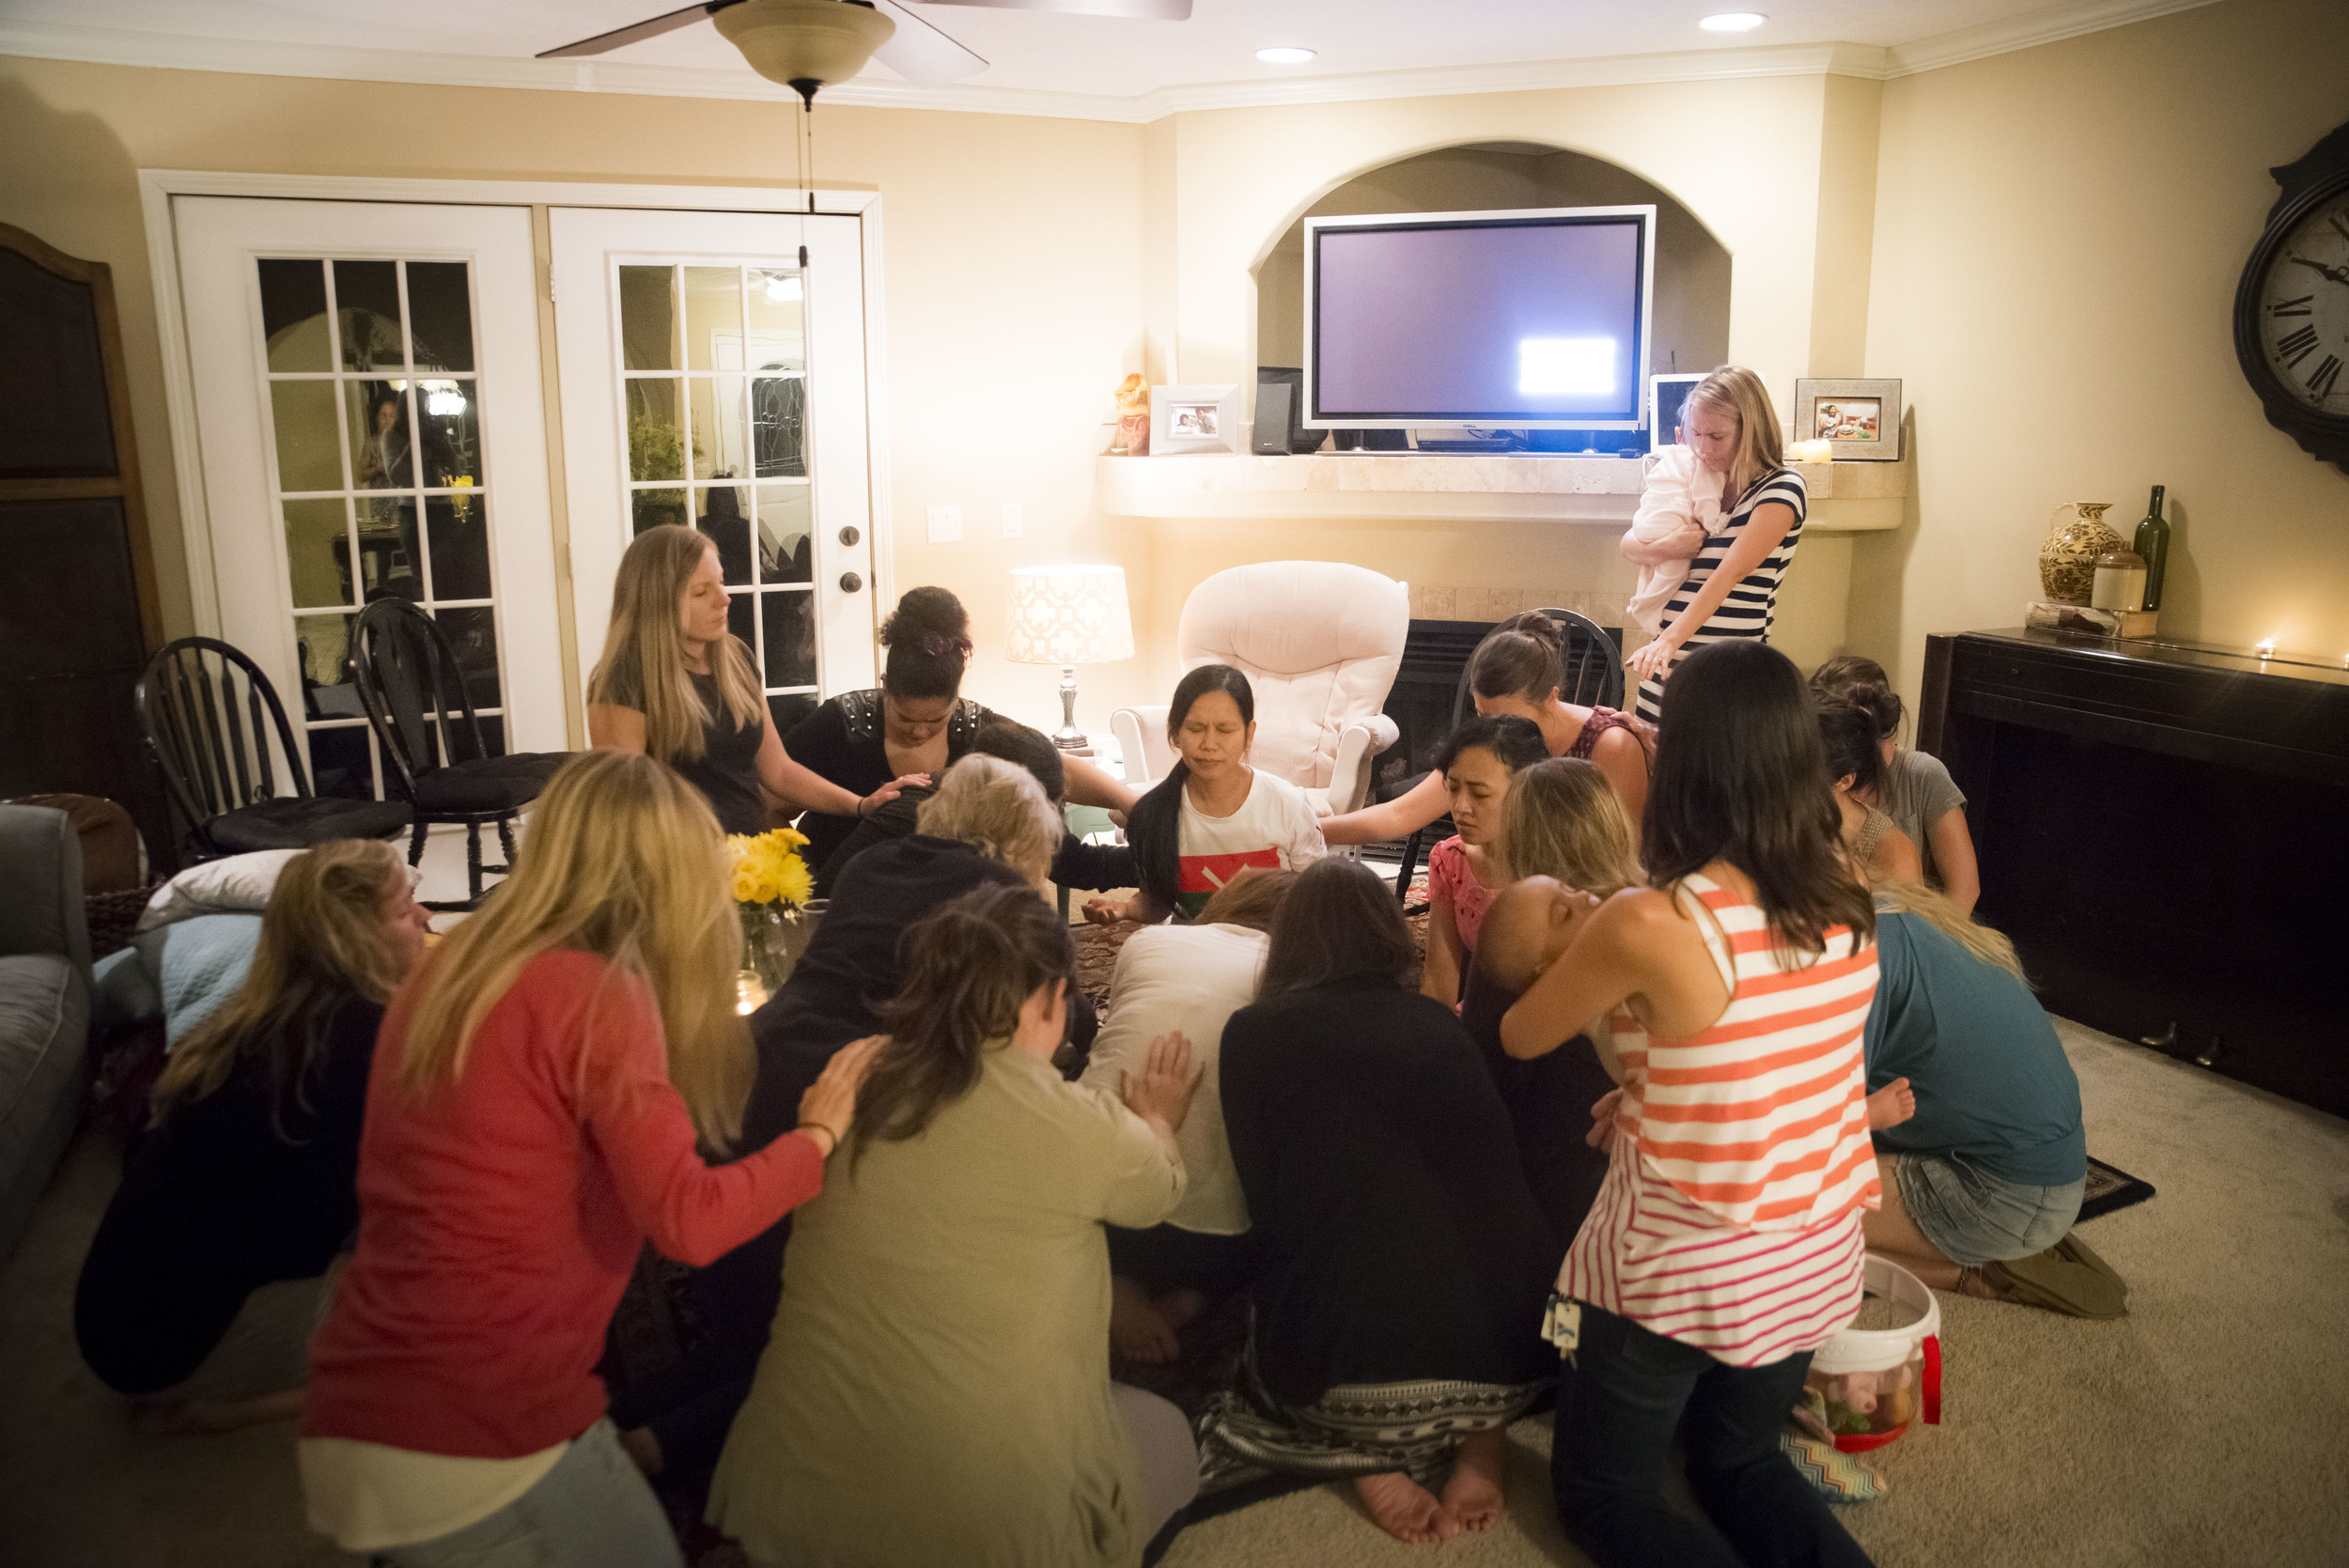 Women gather in prayer after the refugees shared their stories. It was a powerful time for all of the women involved.